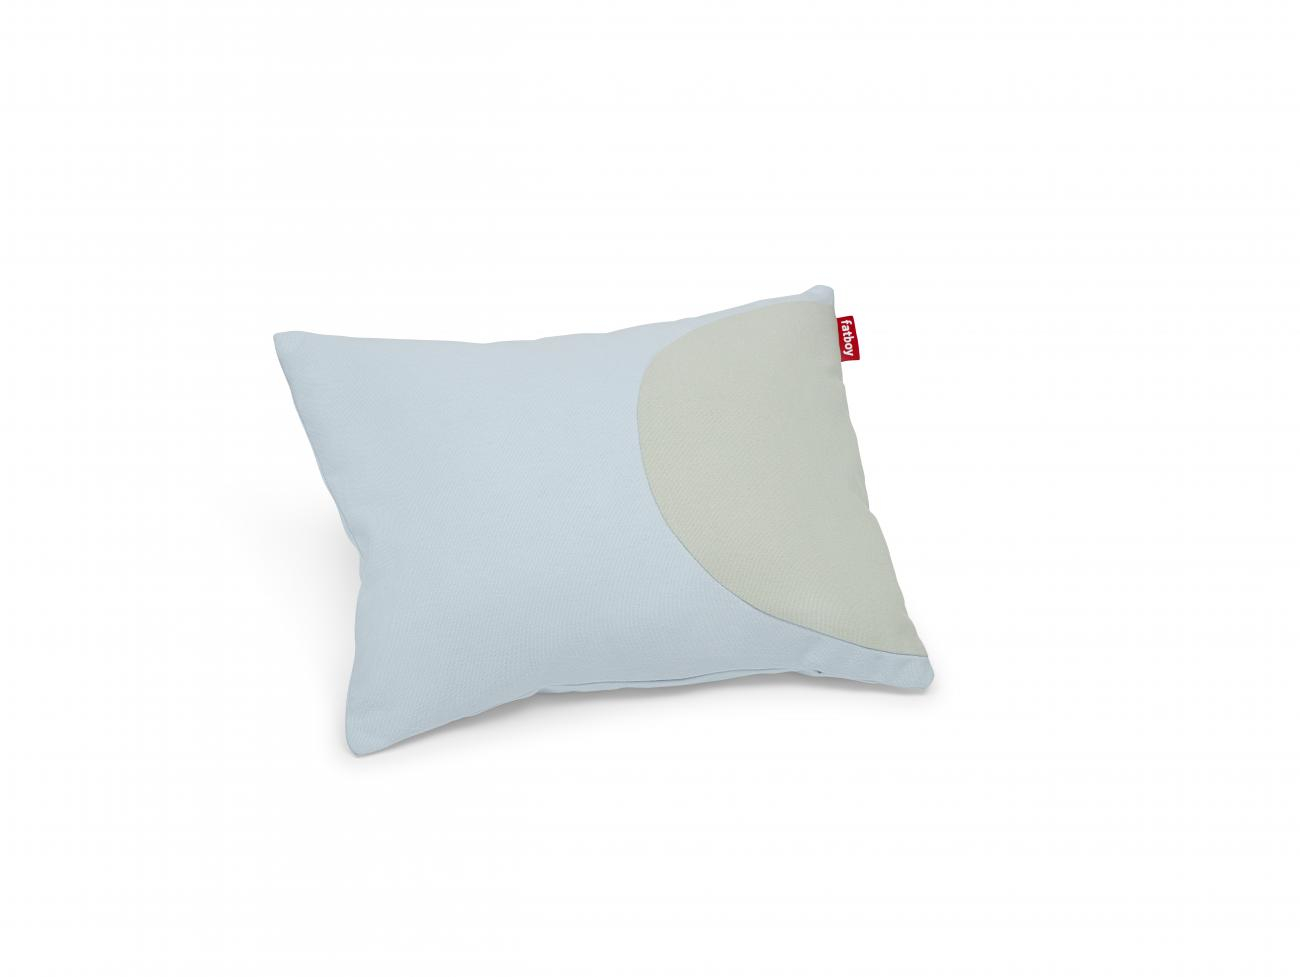 https://www.fundesign.nl/media/catalog/product/f/a/fatboy_pop-pillow_frost_front_srgb.jpg